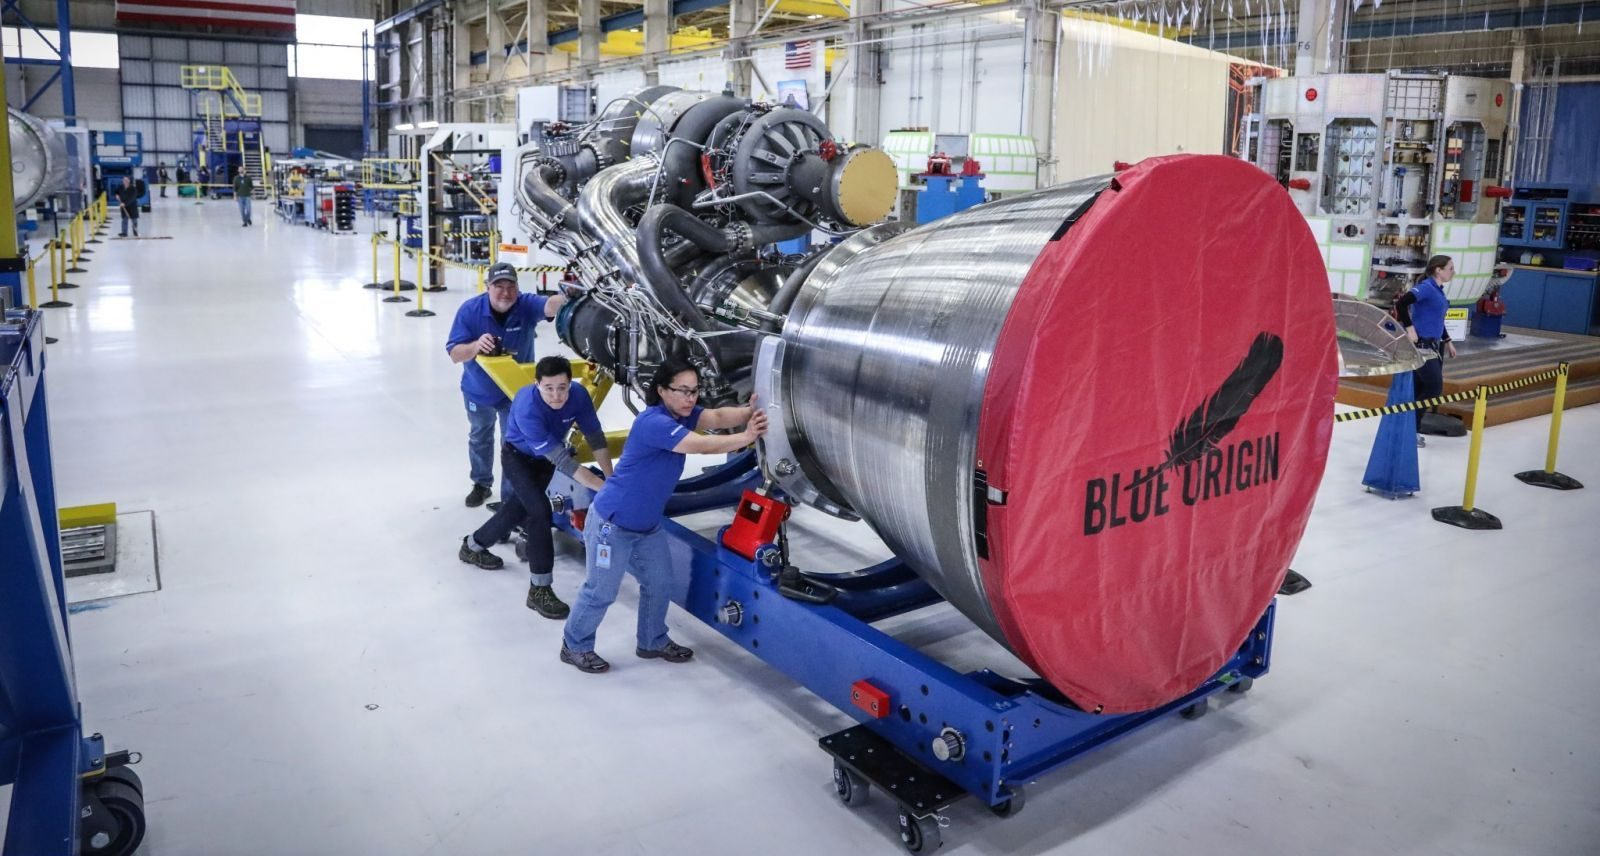 A BE-4 engine on its transport cradle. Photo Credit: Jeff Bezos / Blue Origin